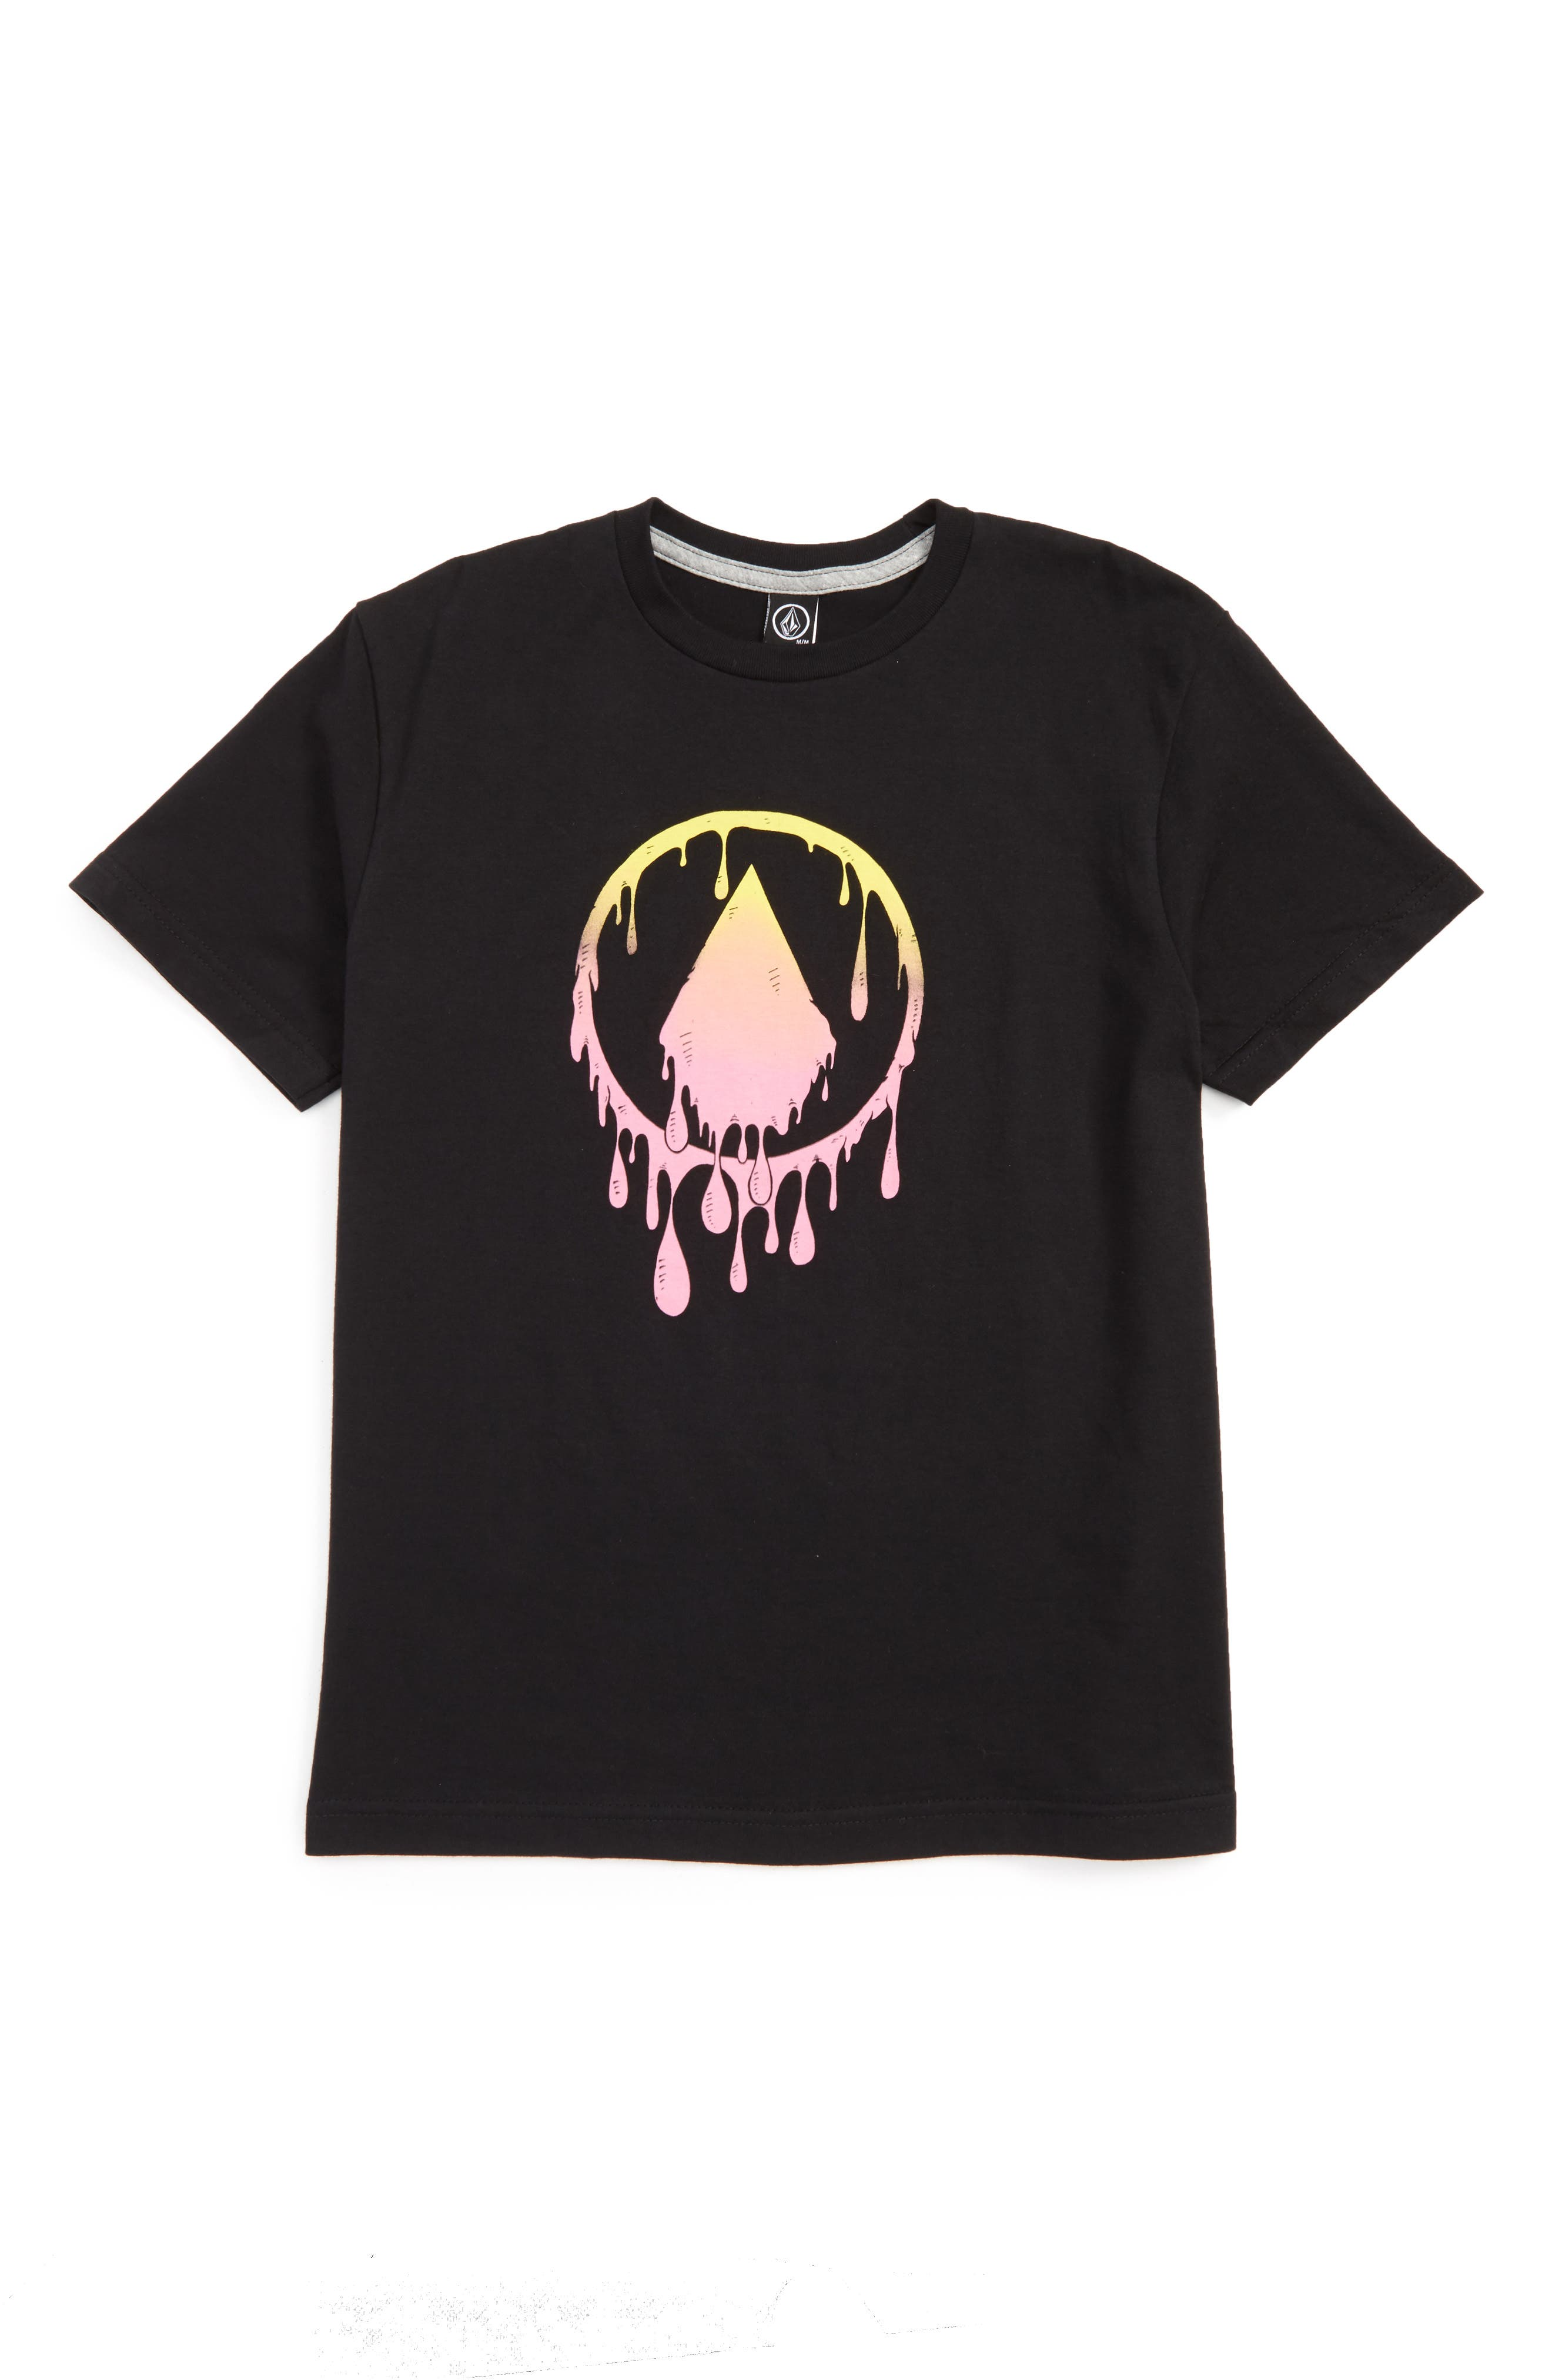 Melty Stone T-Shirt,                             Main thumbnail 1, color,                             001